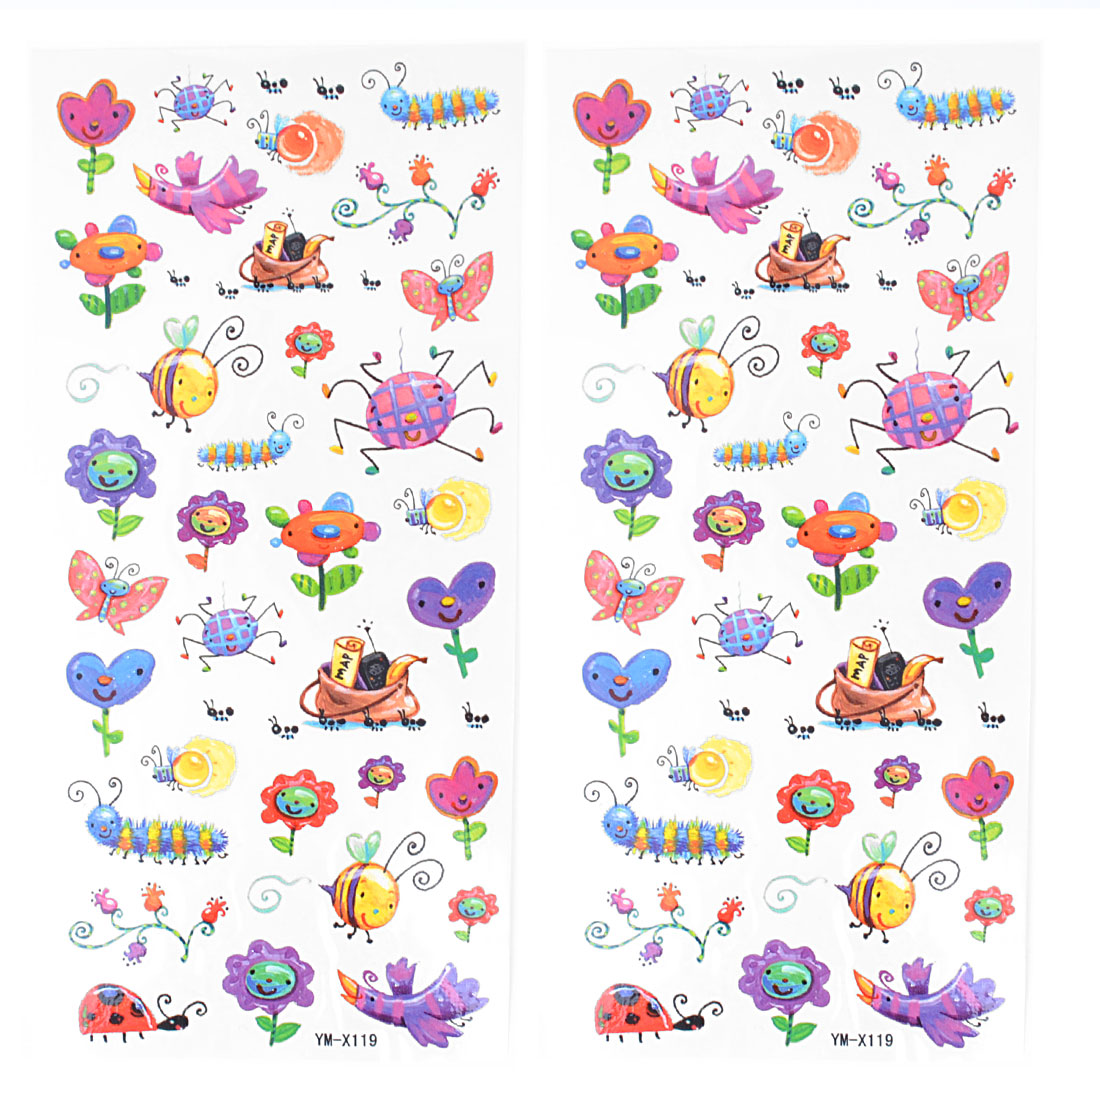 Colorful Bees Butterfly Caterpillar Ladybug Insects Pattern Temporary Tattoo Transfer Sticker 2 Pcs